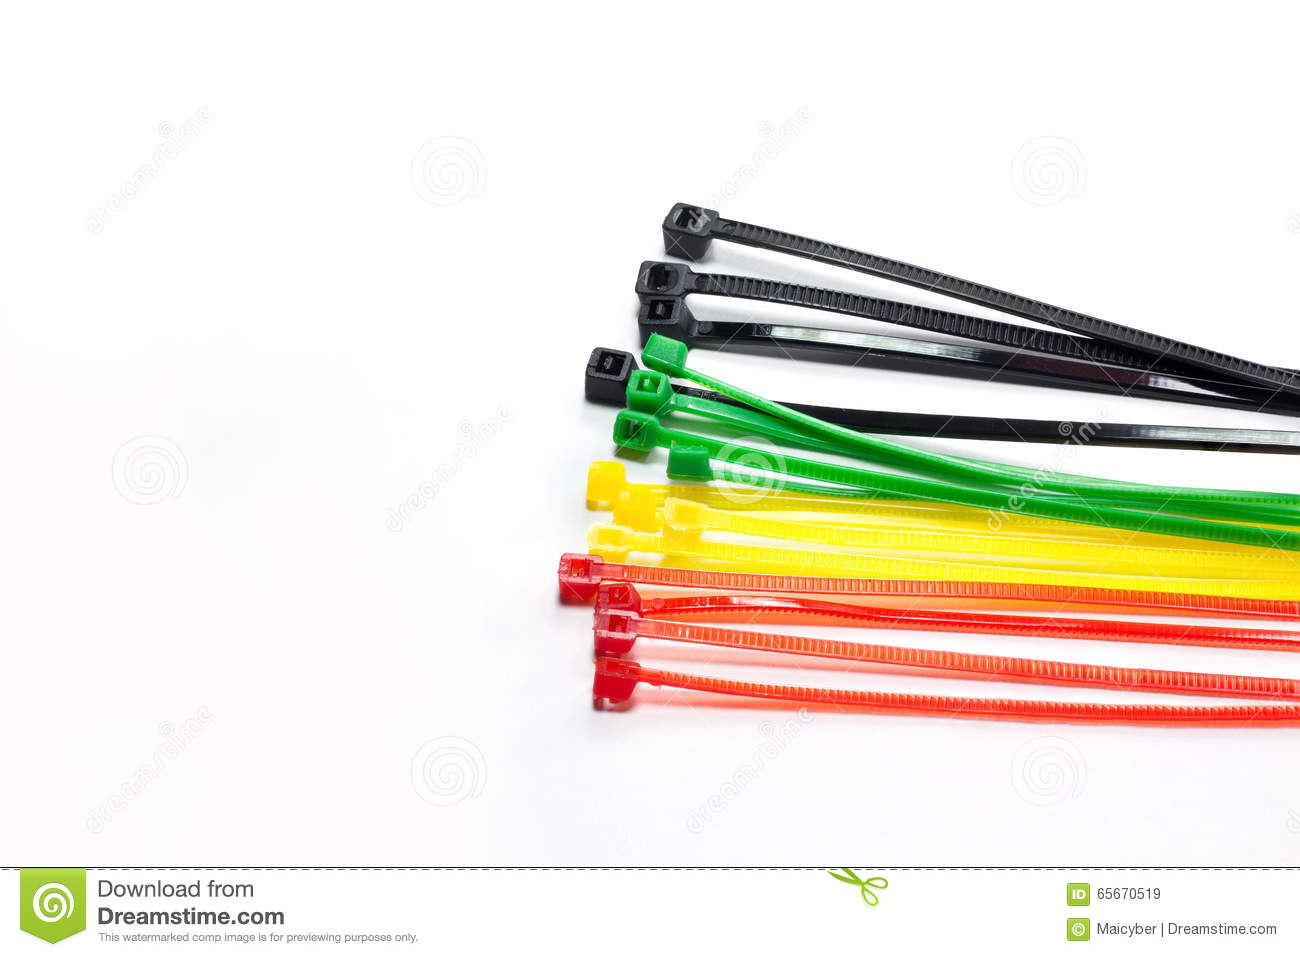 Cable tie stock image. Image of color, lock, cable, bundle - 65670519